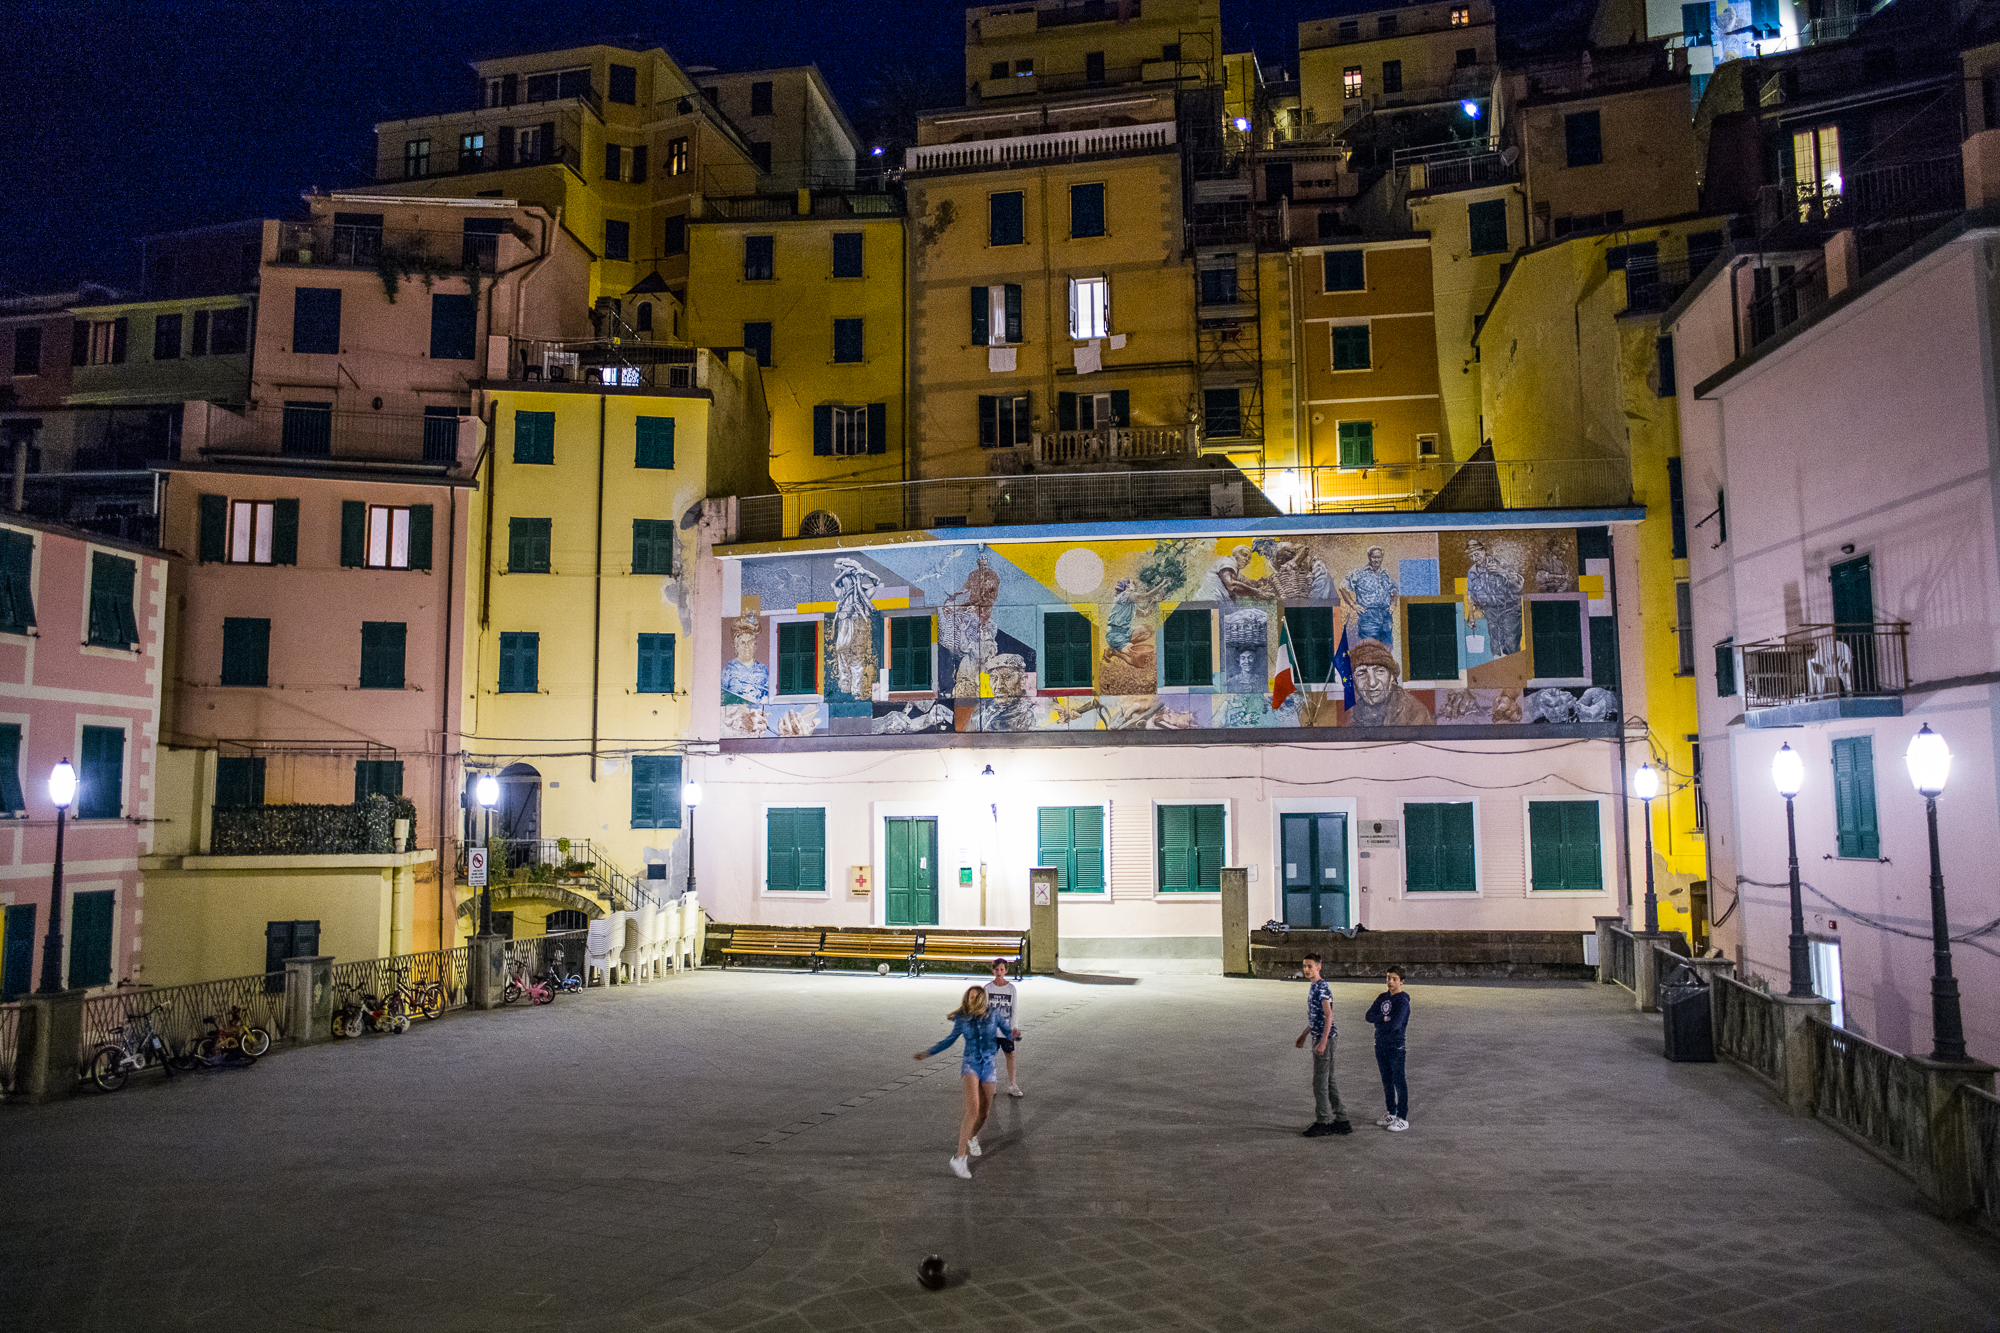 Soccer at night in Riomaggiore